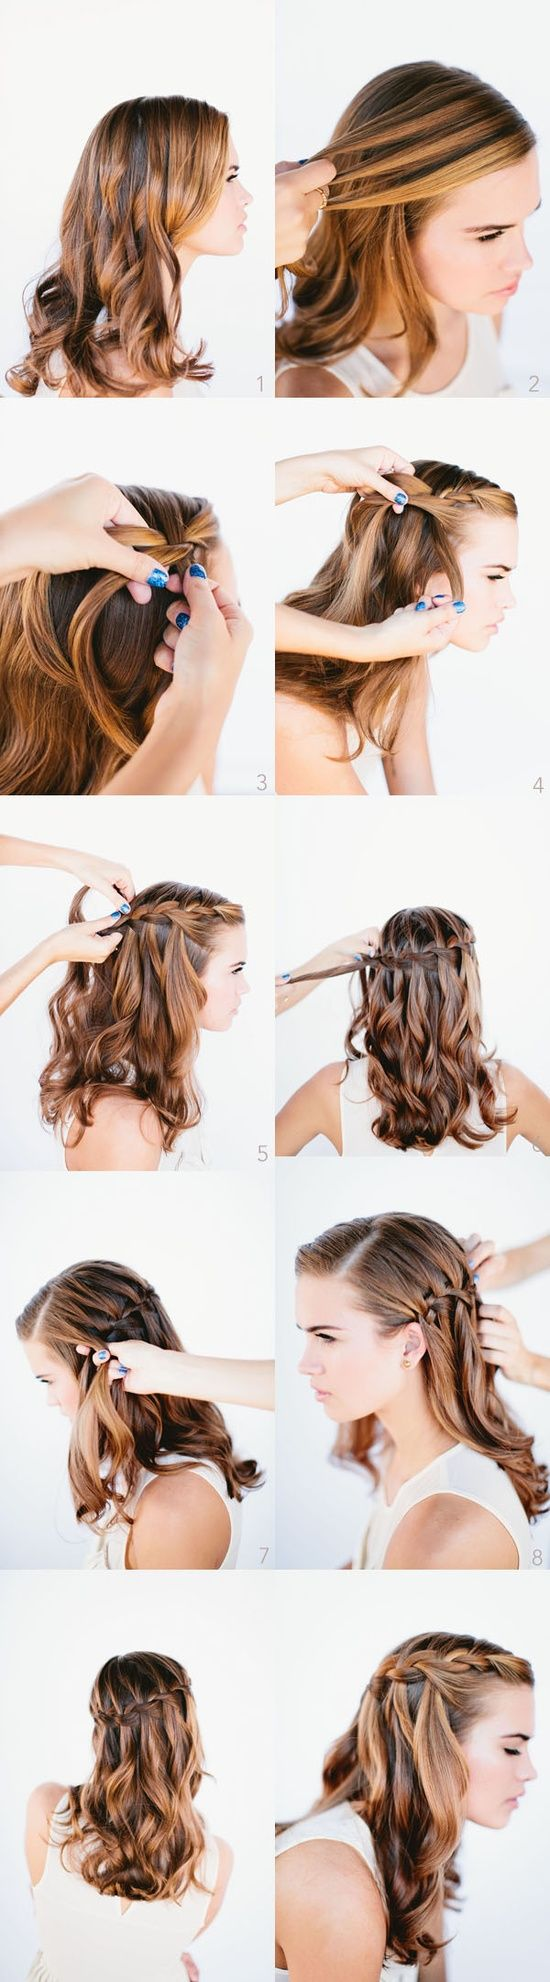 Beauty: How to do a Waterfall braid